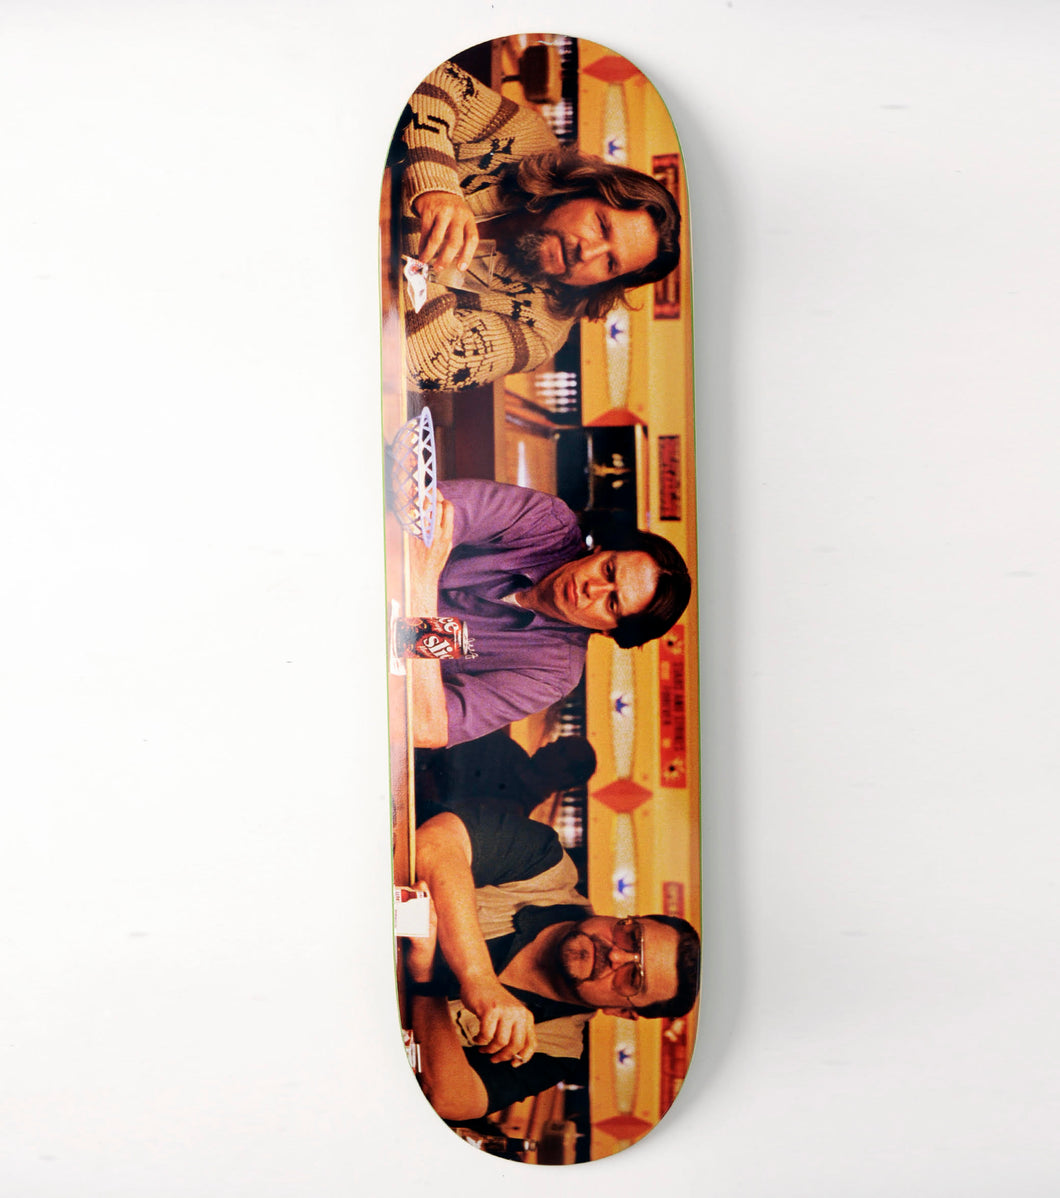 Skateboard Cafe Bowling Deck - 8.5